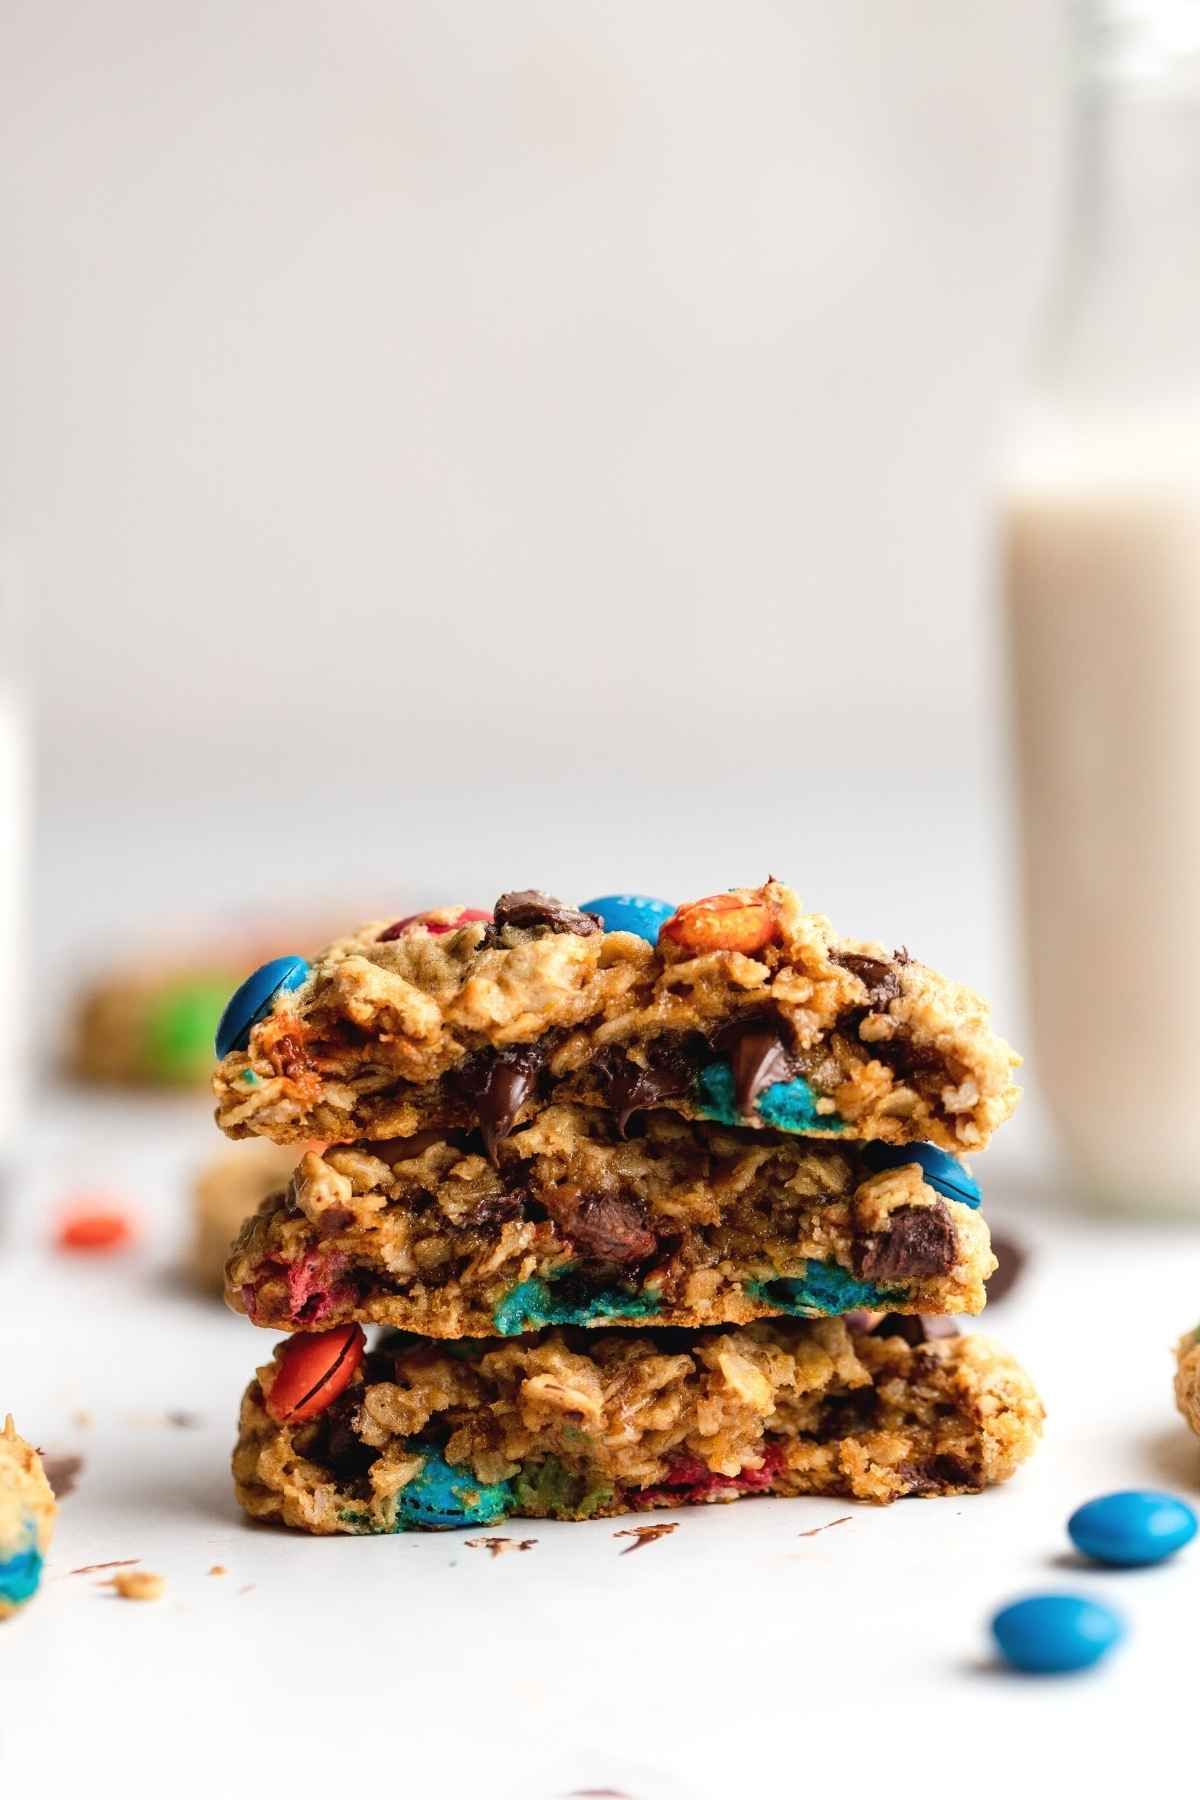 Monster Cookies stacked on table with glass of milk